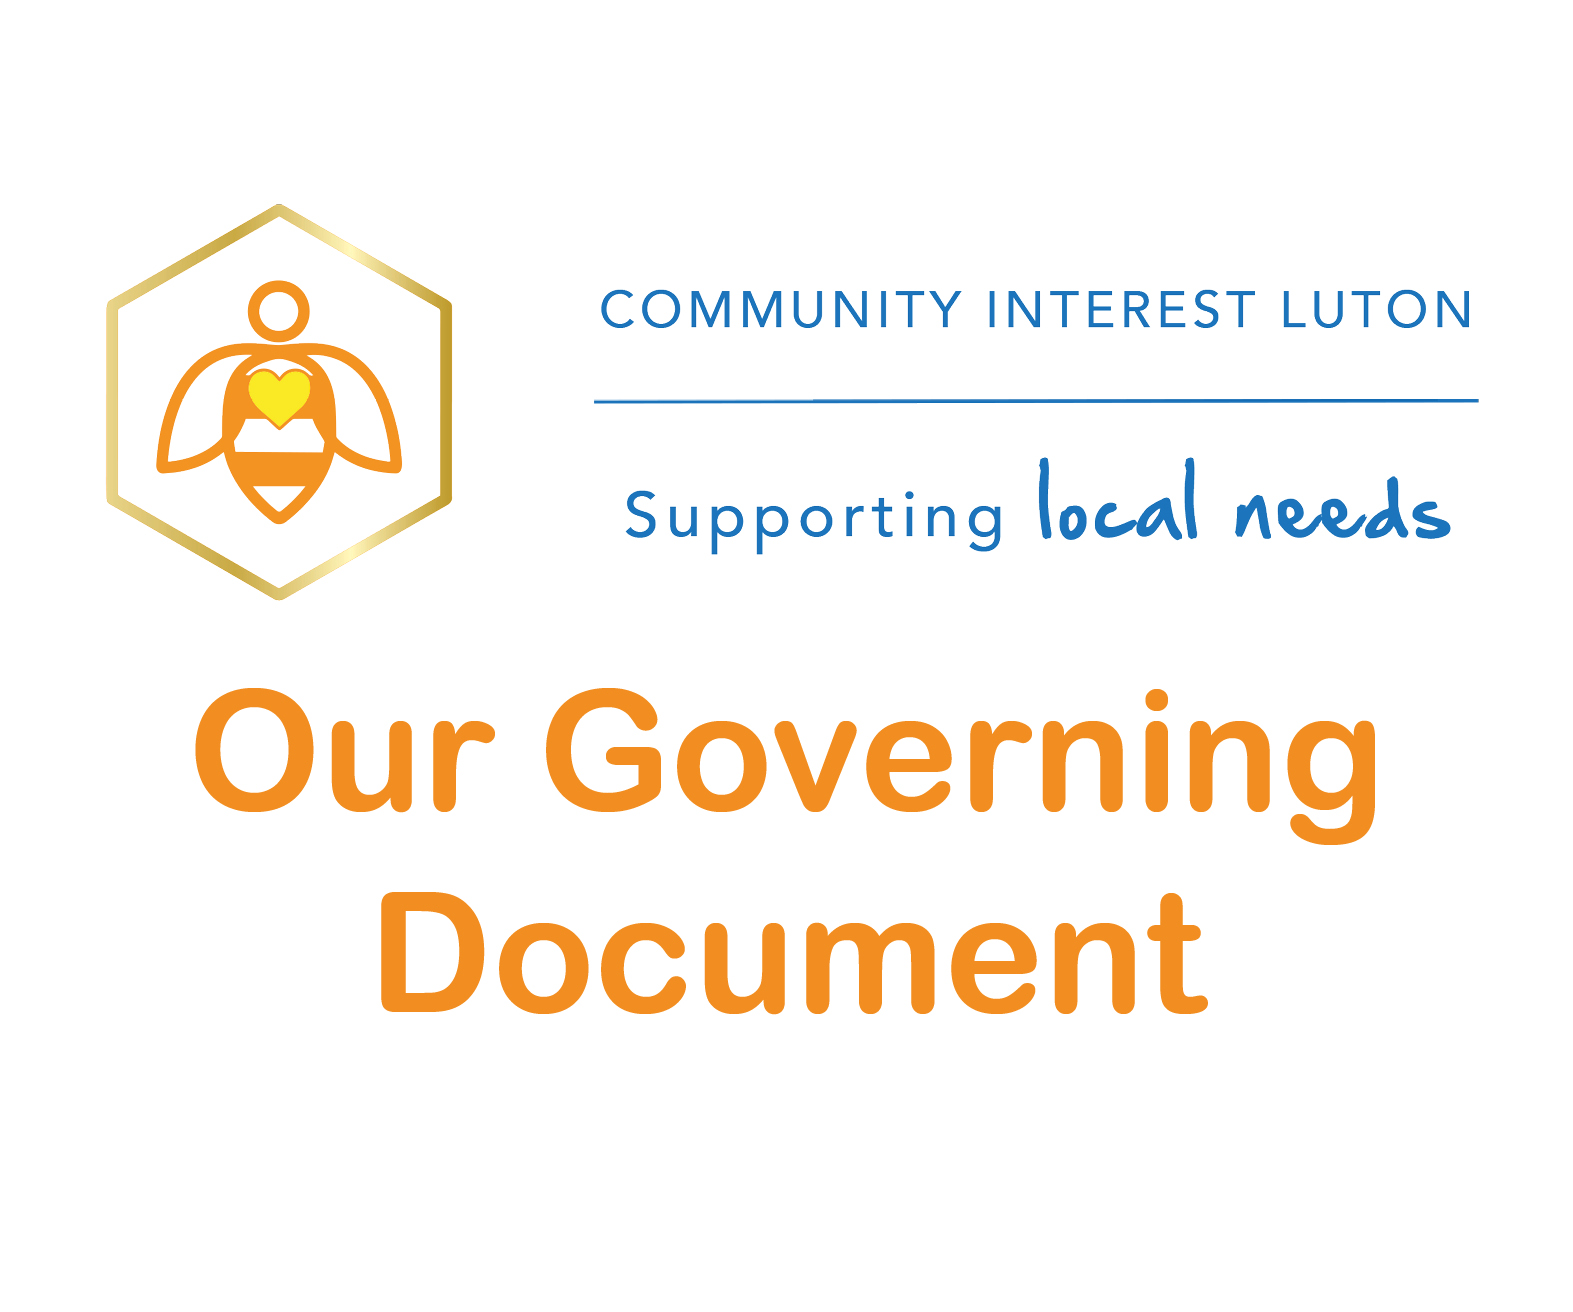 Our governing document